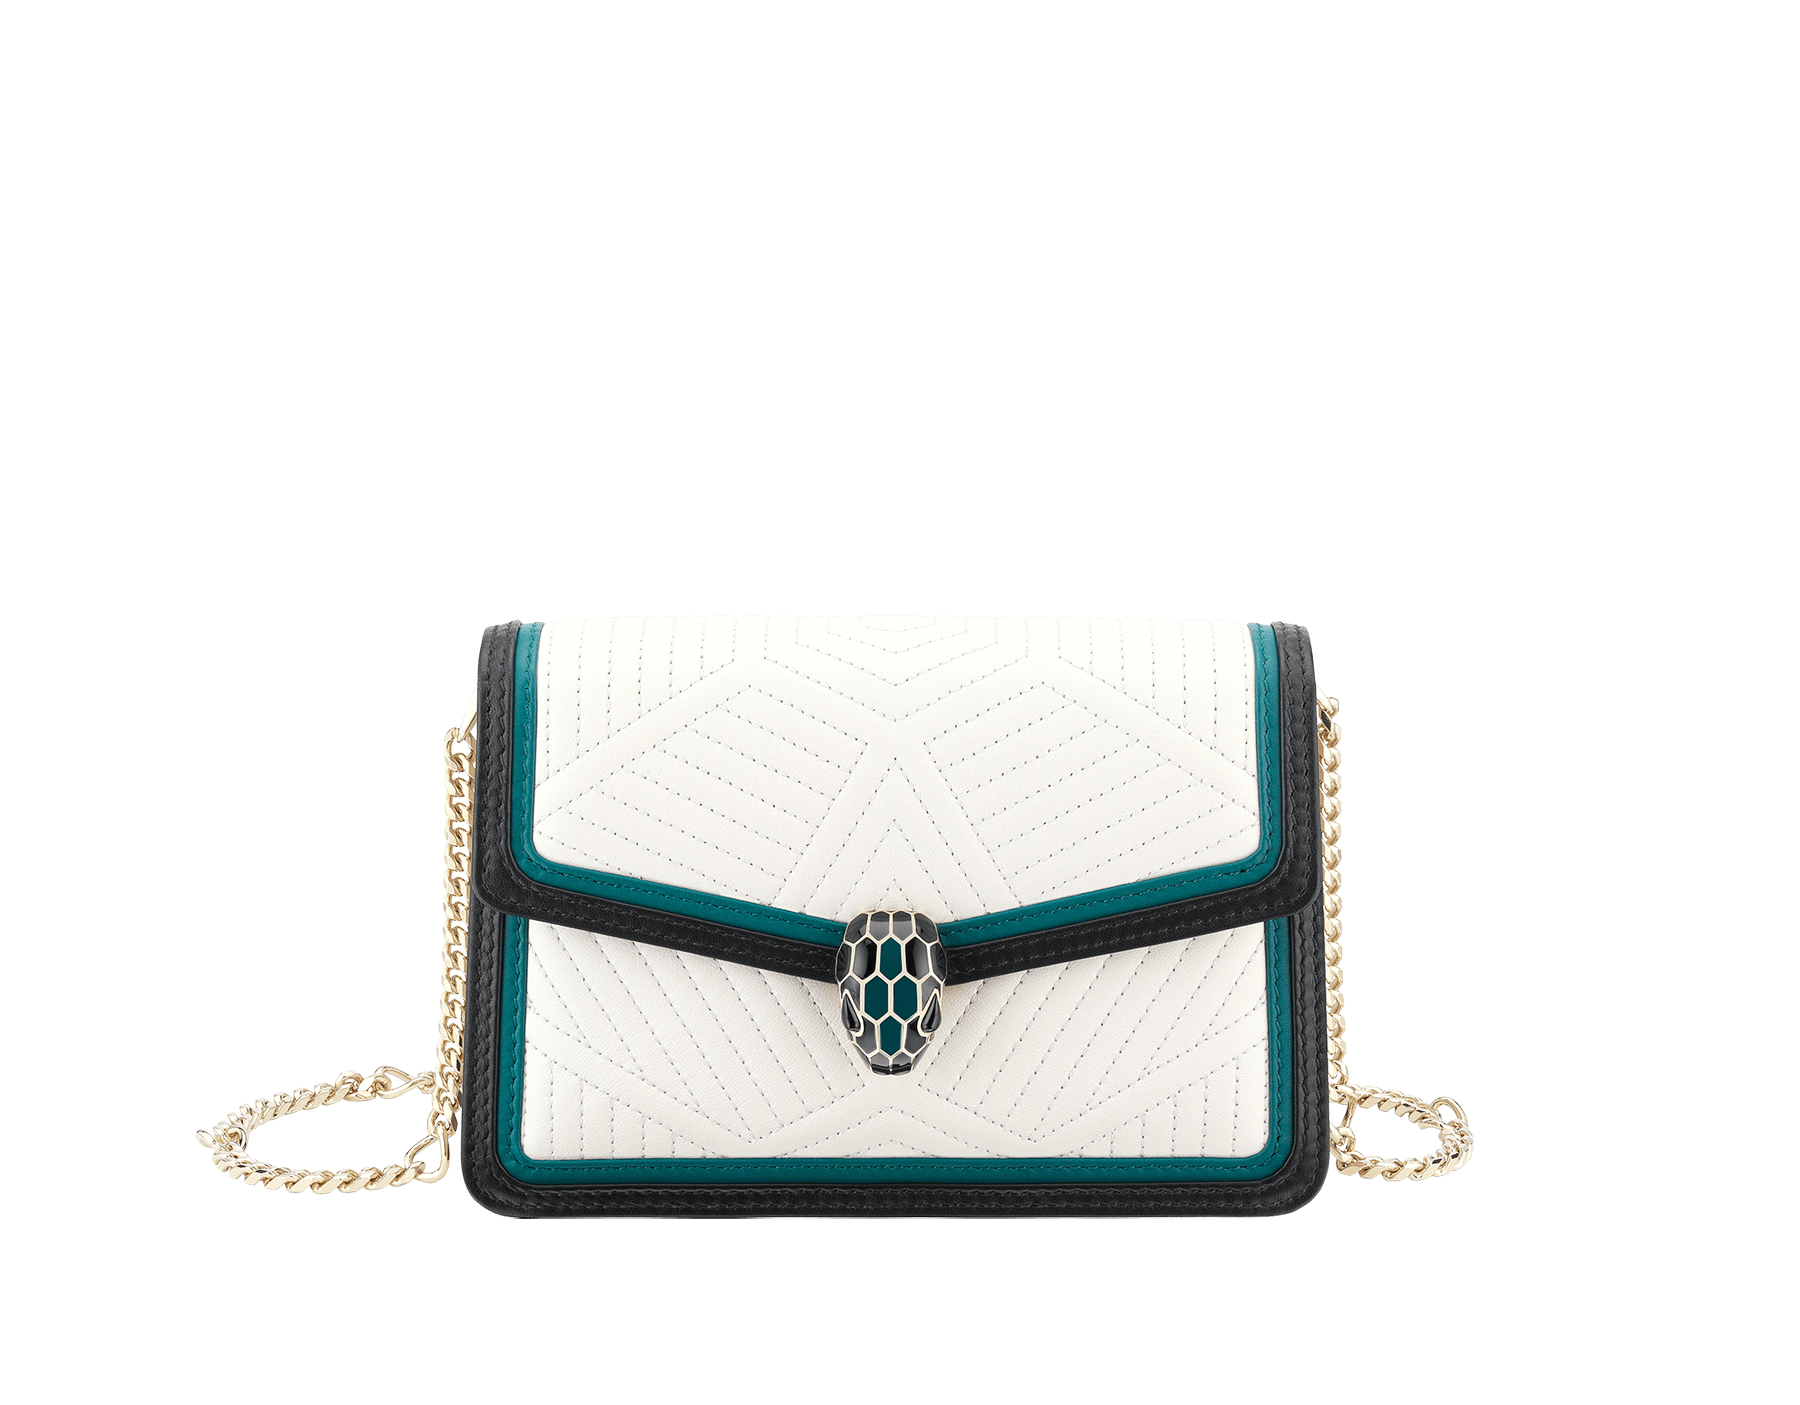 """Serpenti Diamond Blast"" crossbody micro bag with white agate quilted nappa leather body and deep jade and black calf leather frames. Iconic snakehead closure in light gold-plated brass enriched with deep jade and black enamel and black onyx eyes. 288106 image 1"